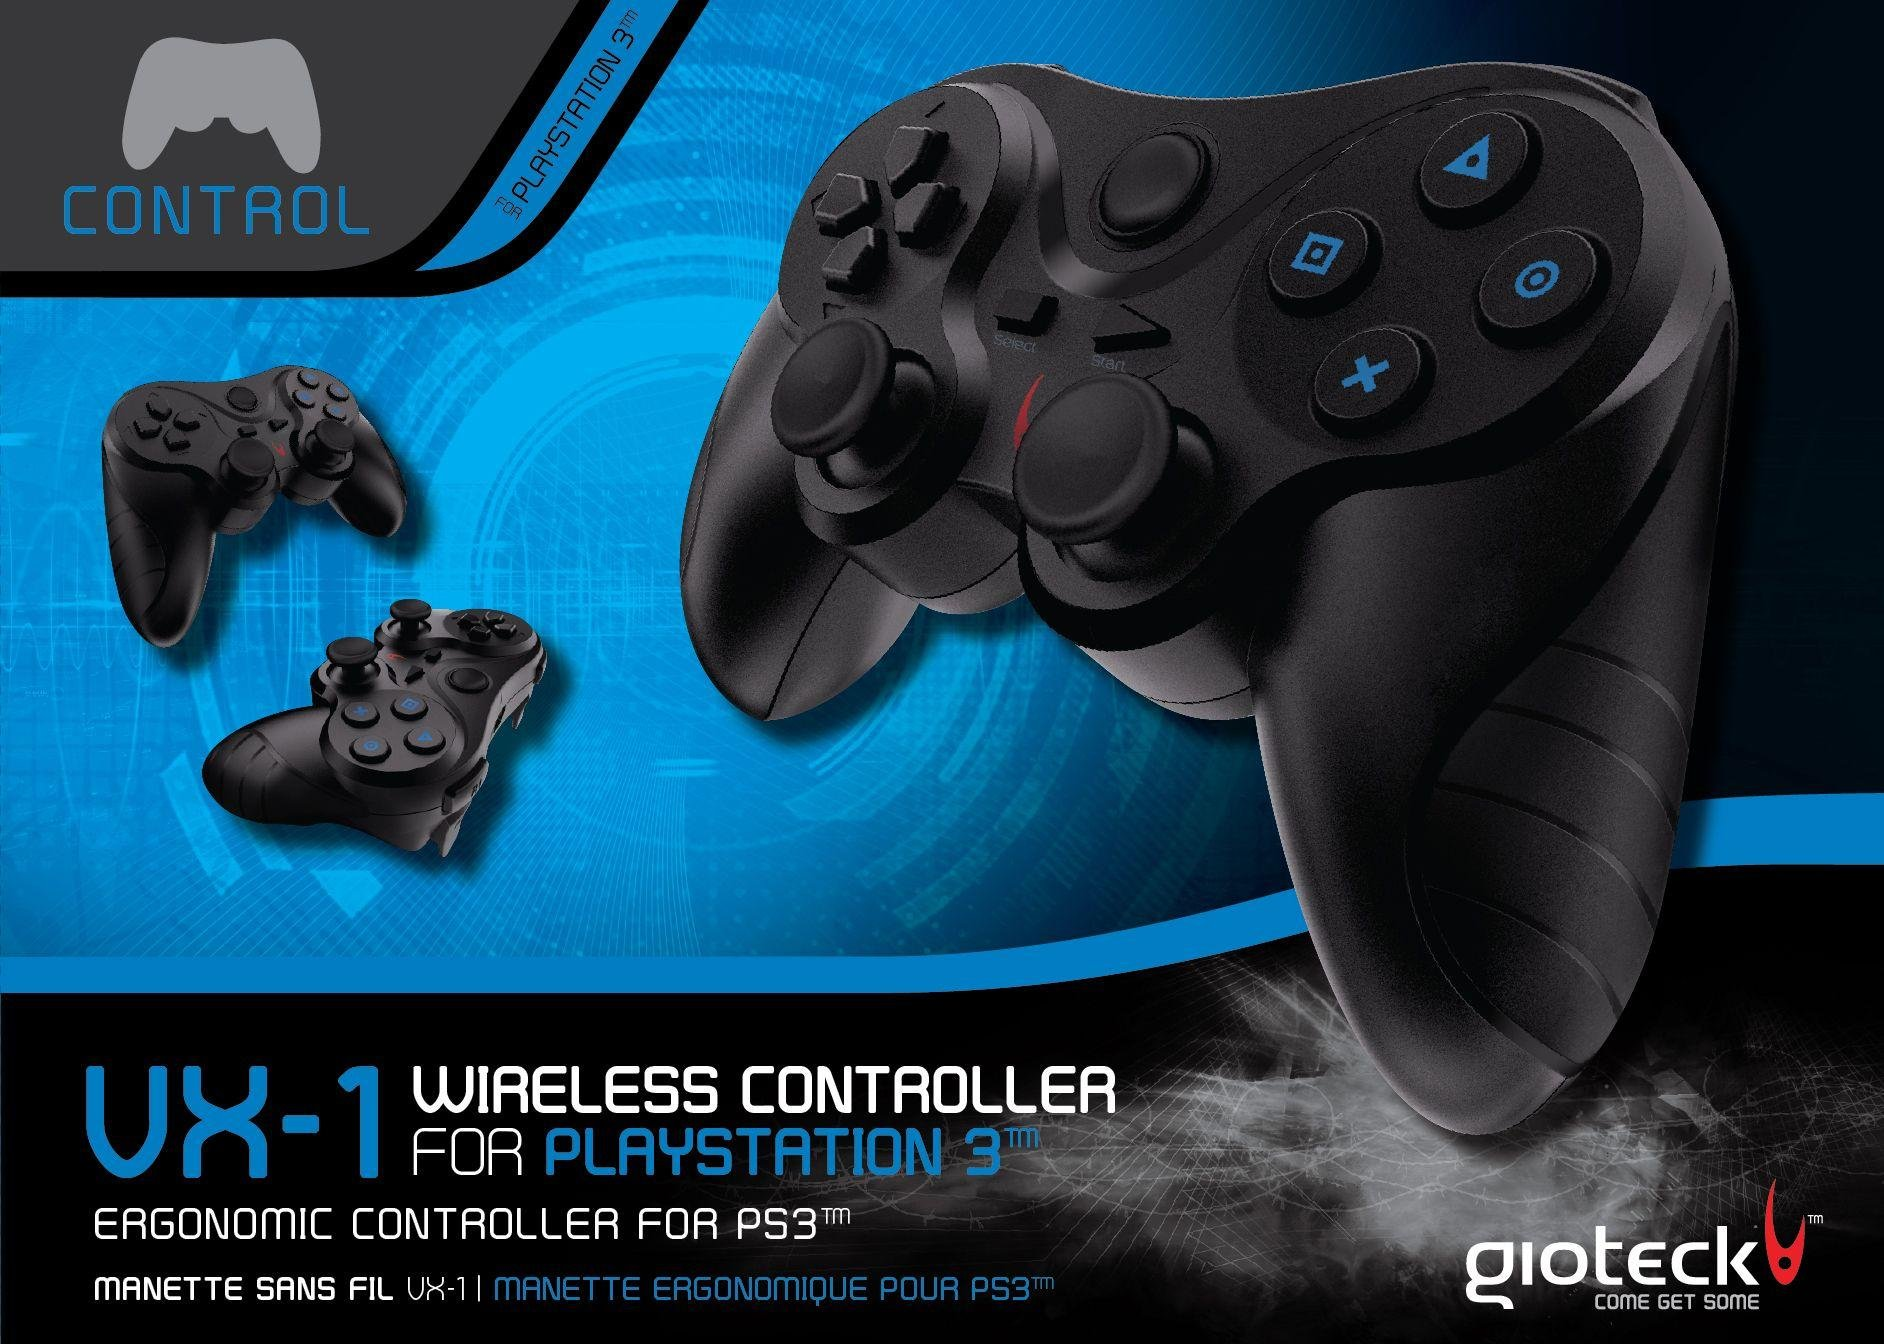 Image of Gioteck - PS3 - VX-1 Wired Controller - Black.